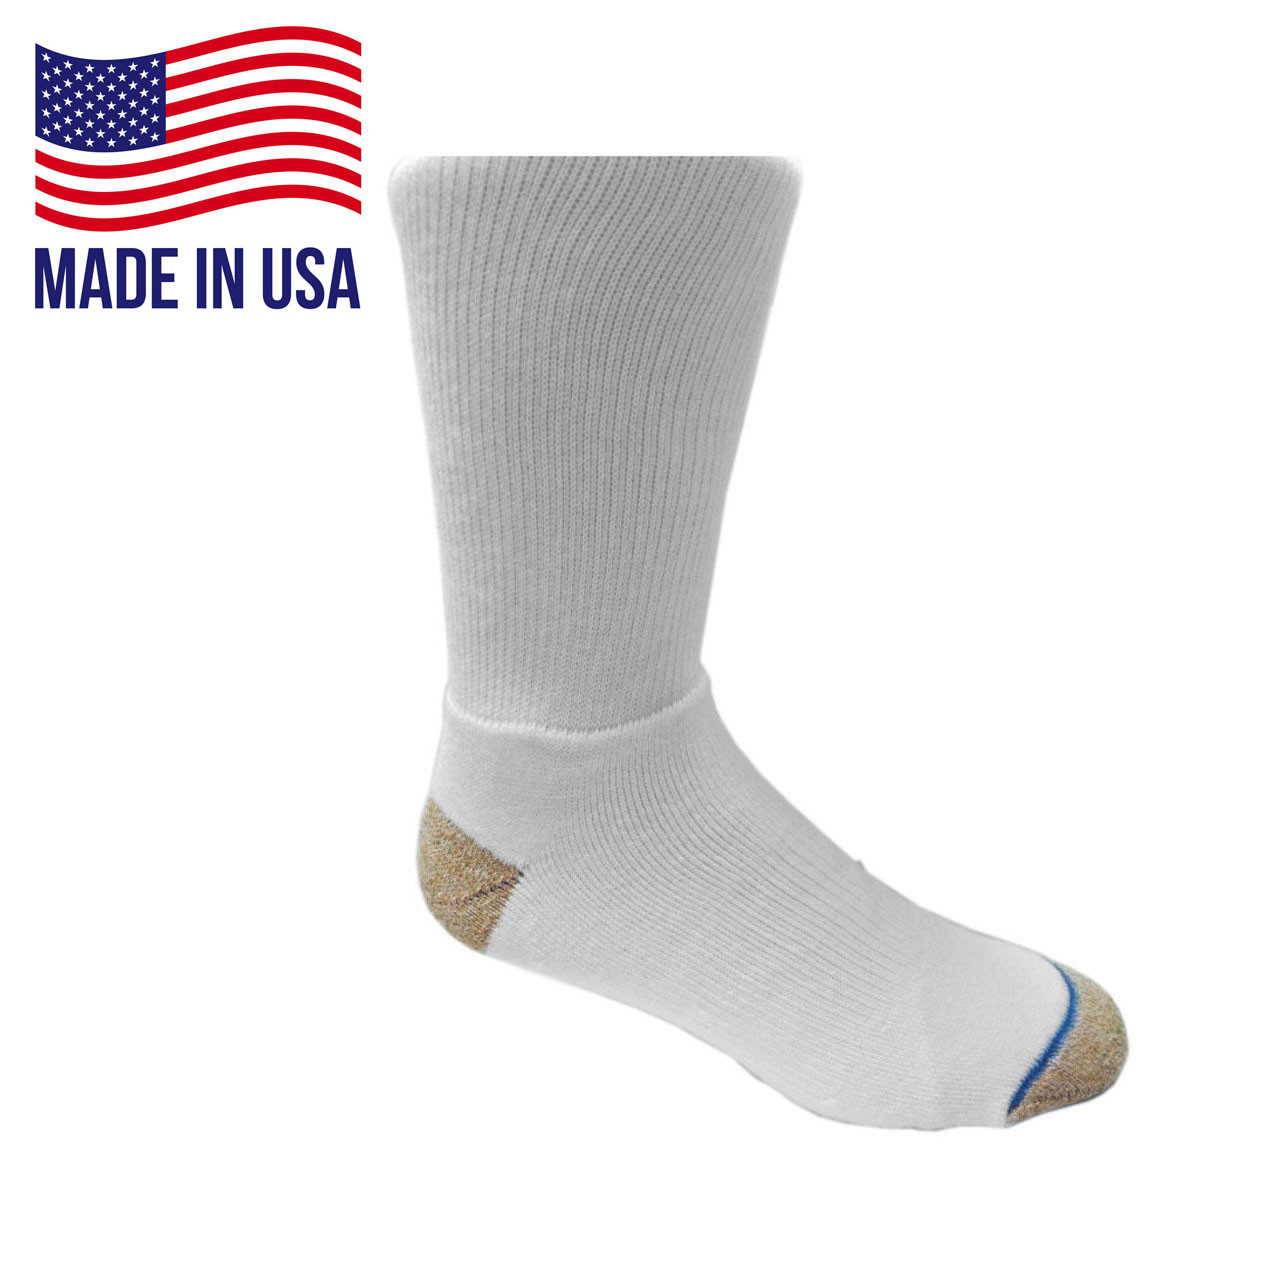 Wrightsock 552 Double Layer DLX Low Quarter Socks 6//Pack